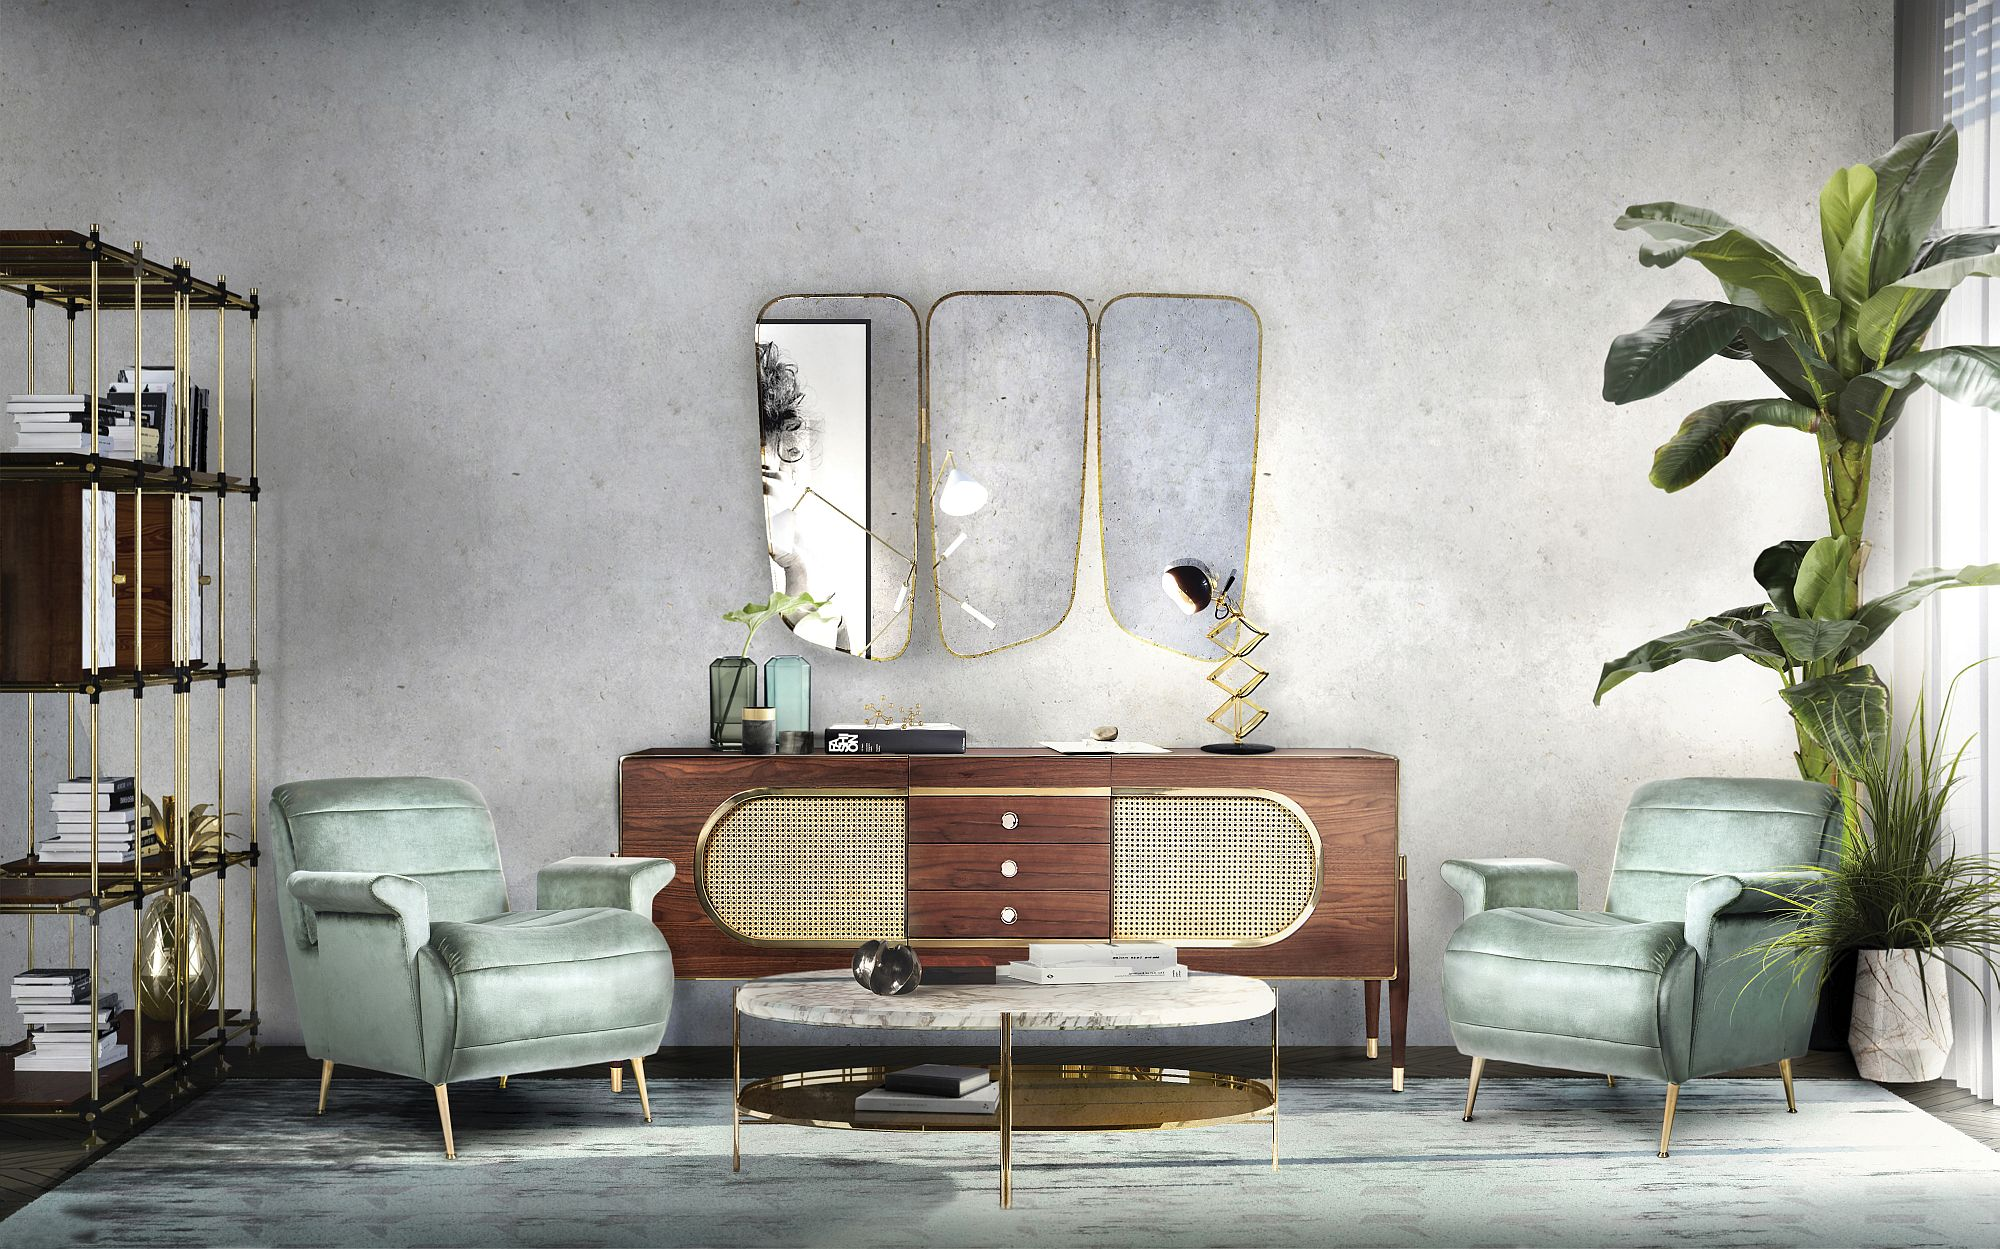 Trendy Midcentury Modern Decor Finds That Take You Back In Time!